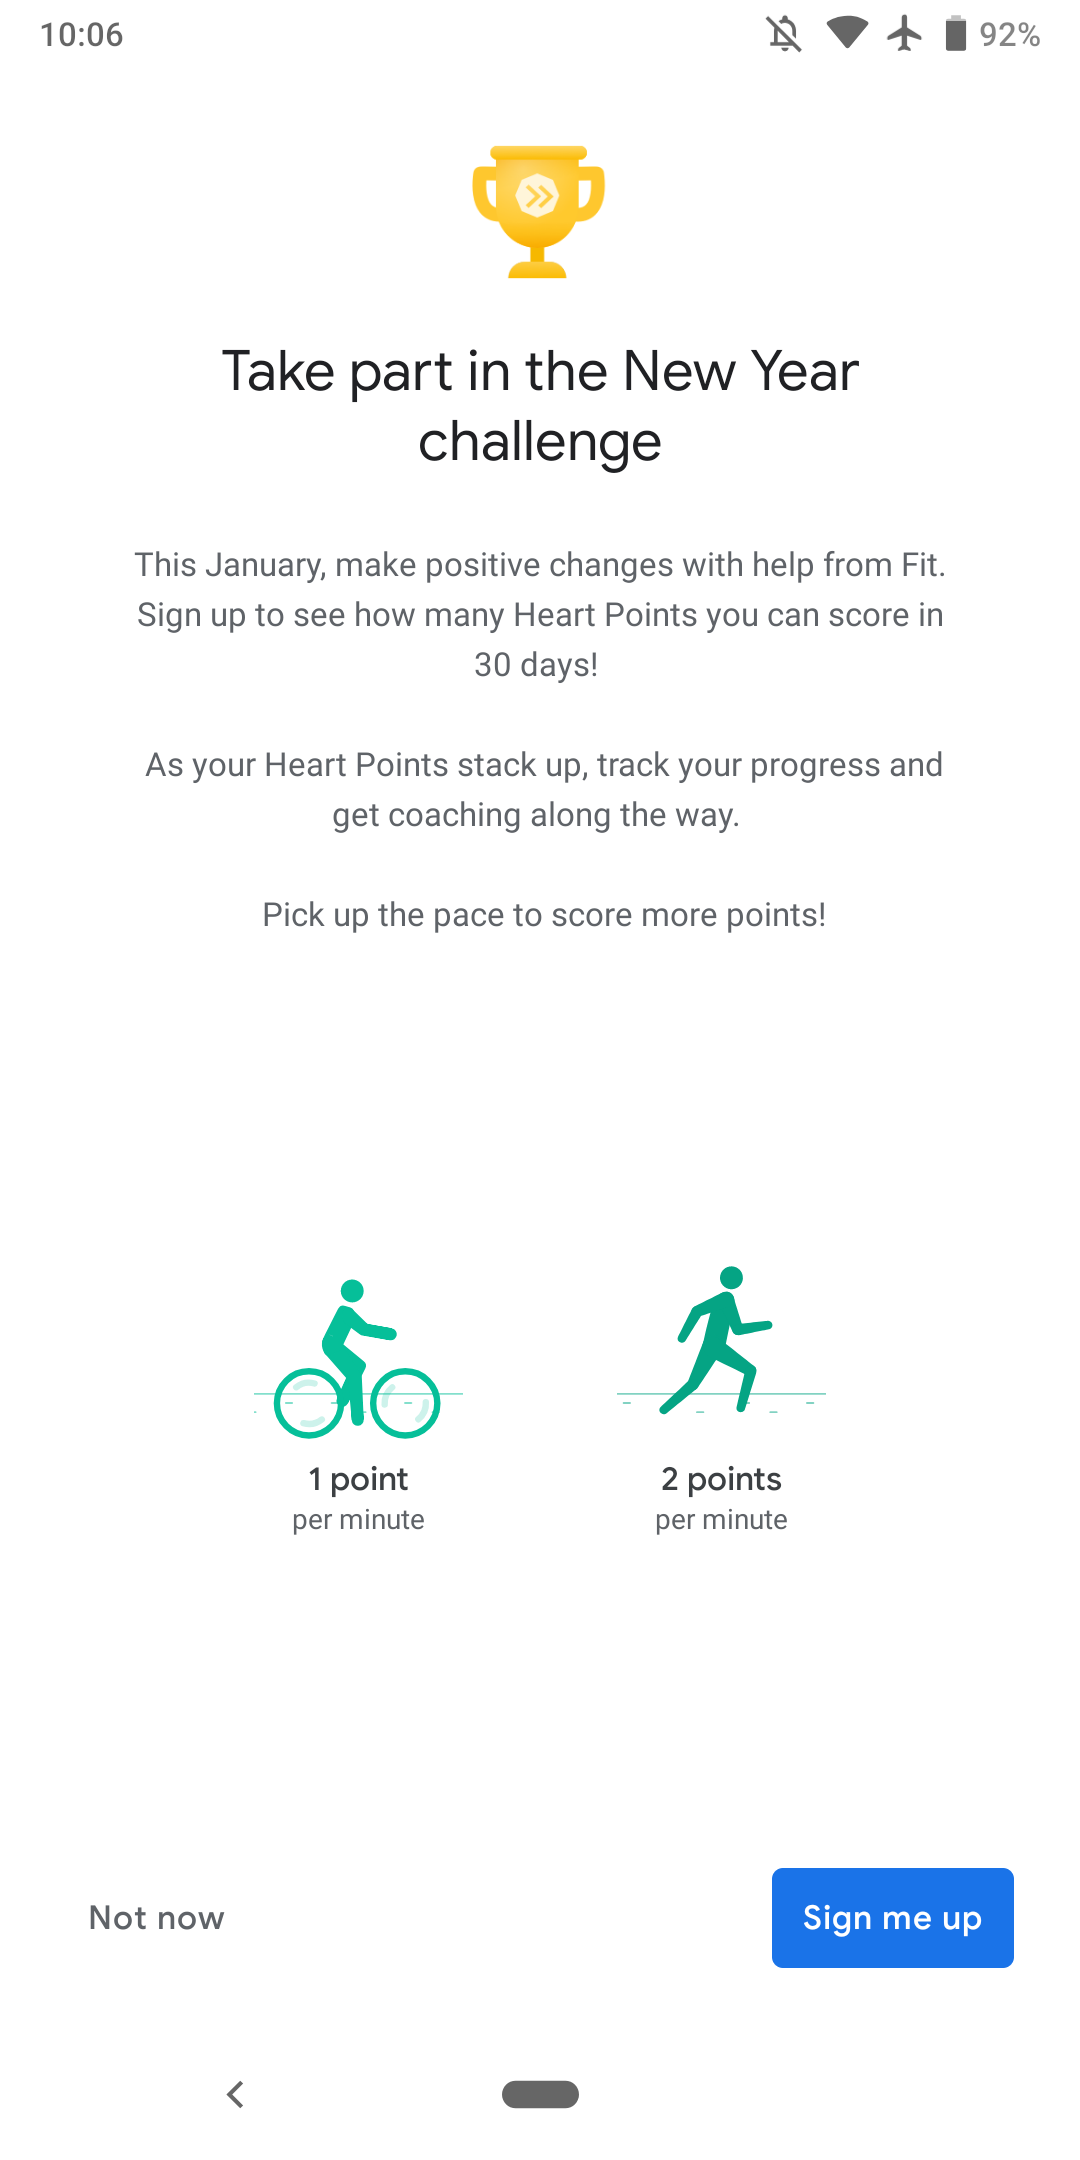 Update: Live] Google Fit adding monthly challenges in 2019 amid